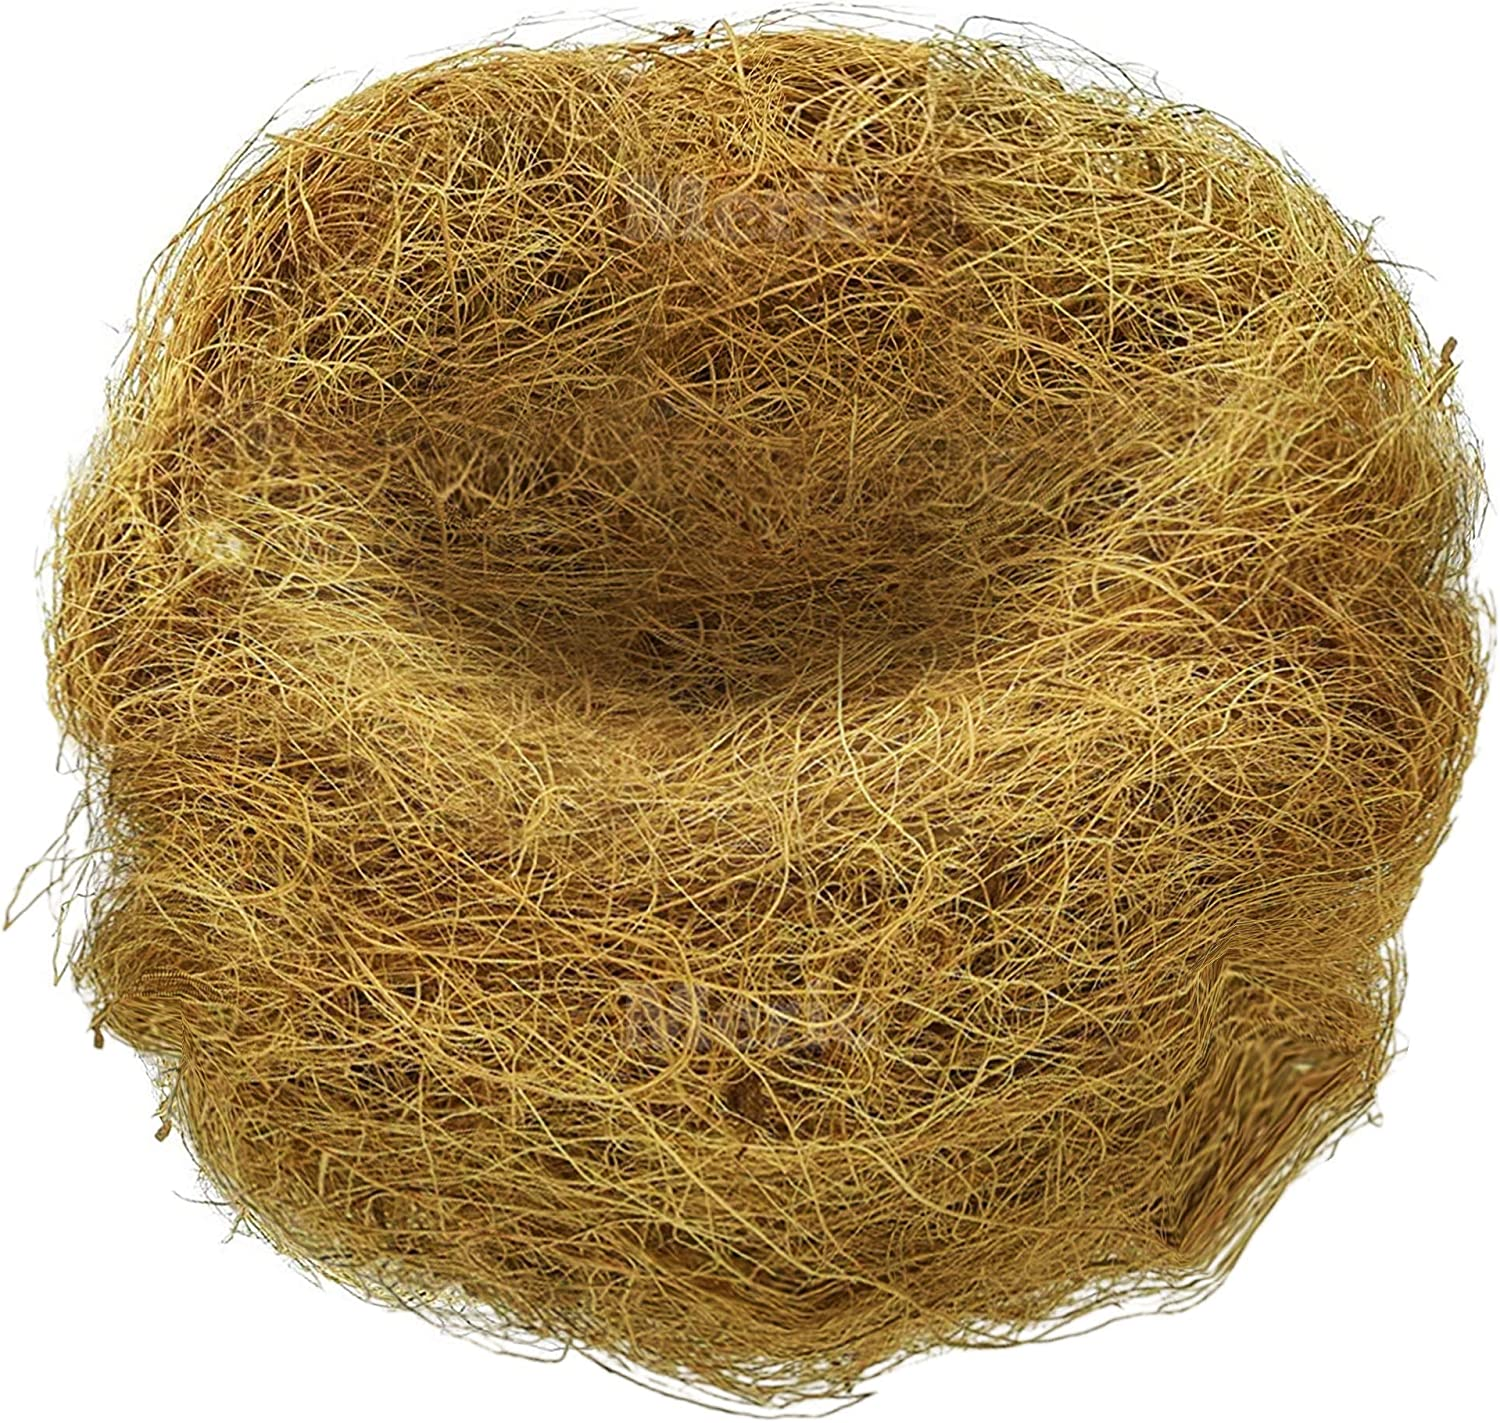 1.5 oz. Nest Lining Material Meric Coconut Fiber for Birds Comfortable Bedding for Small Birds and Animals Great for Nest Building and Hideouts